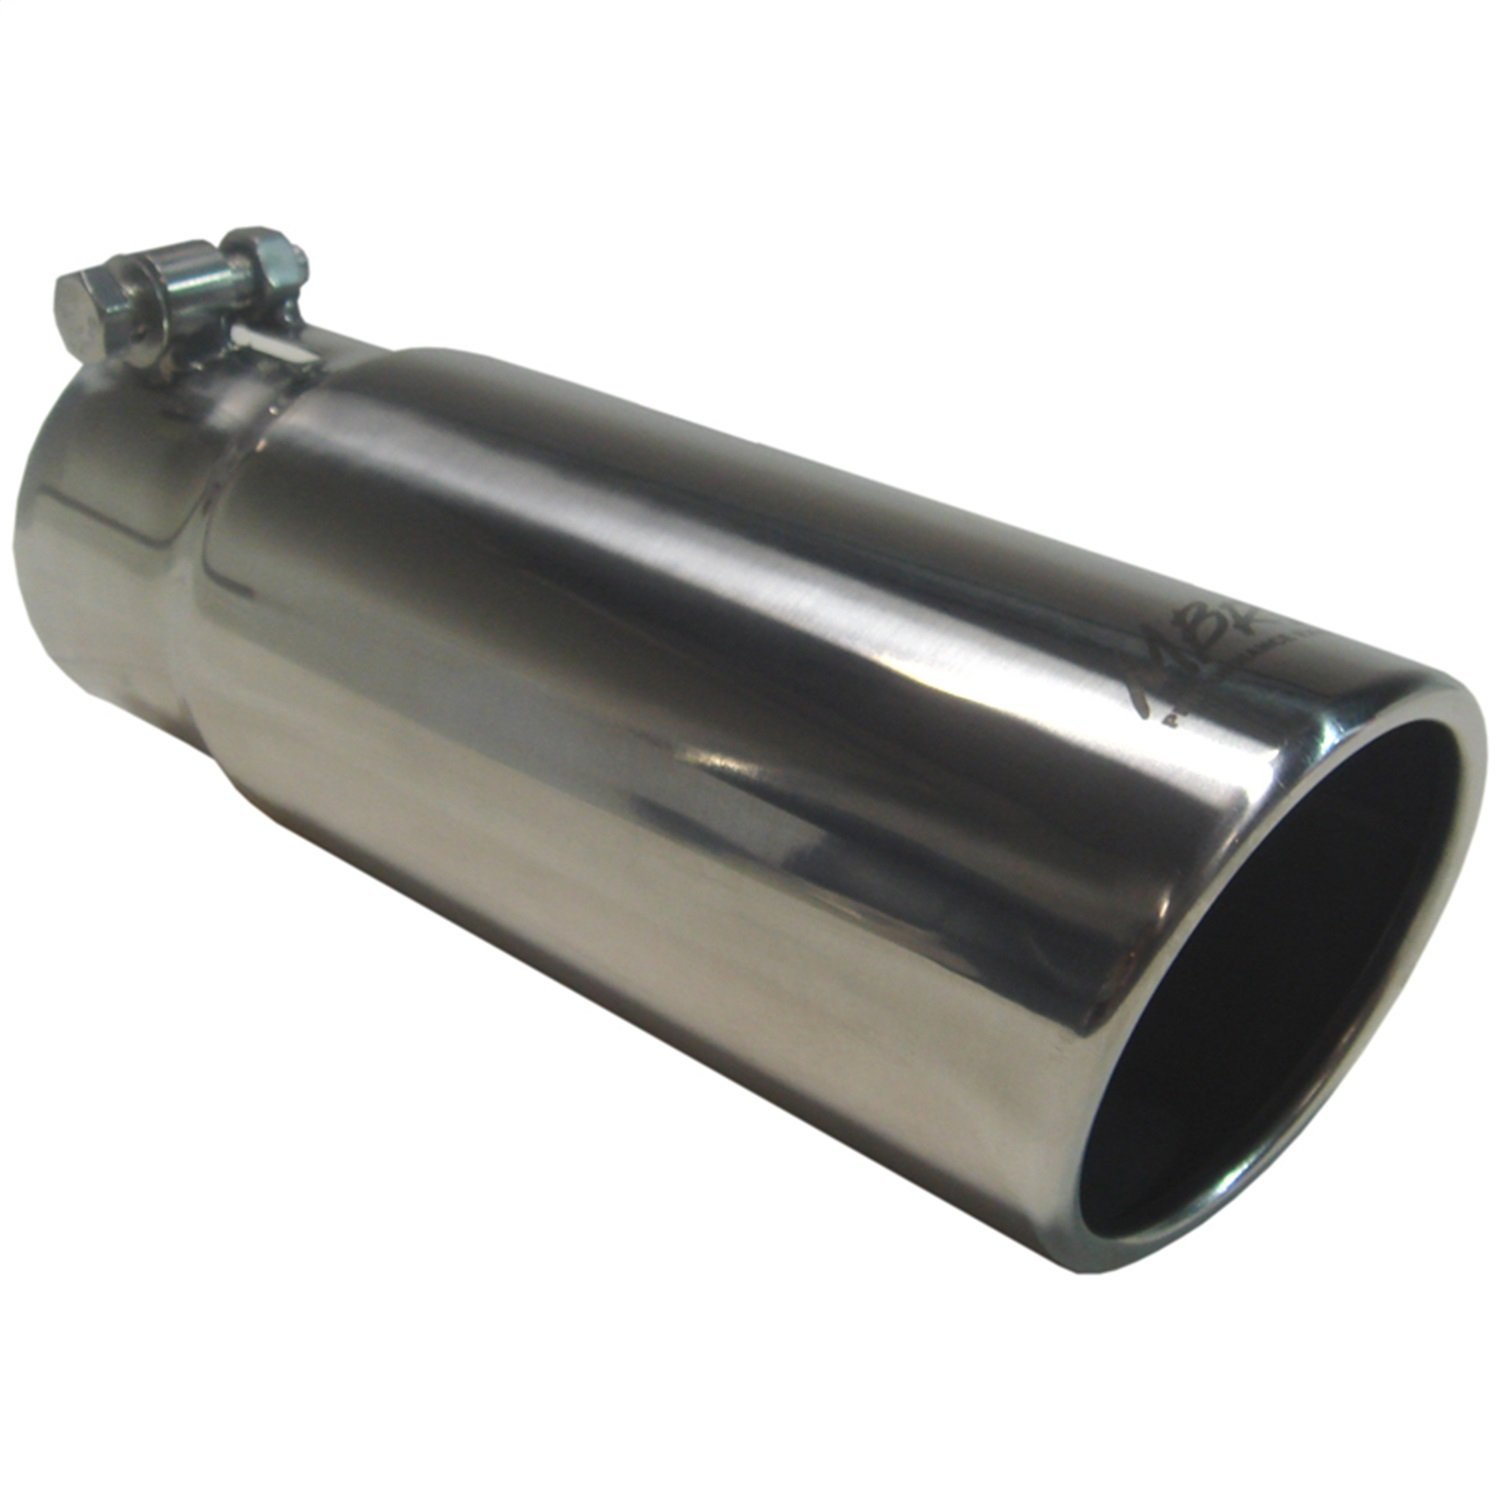 MBRP T5115 3 1/2' O.D. Angled Rolled Exhaust Tip (T304) MBRP Exhaust